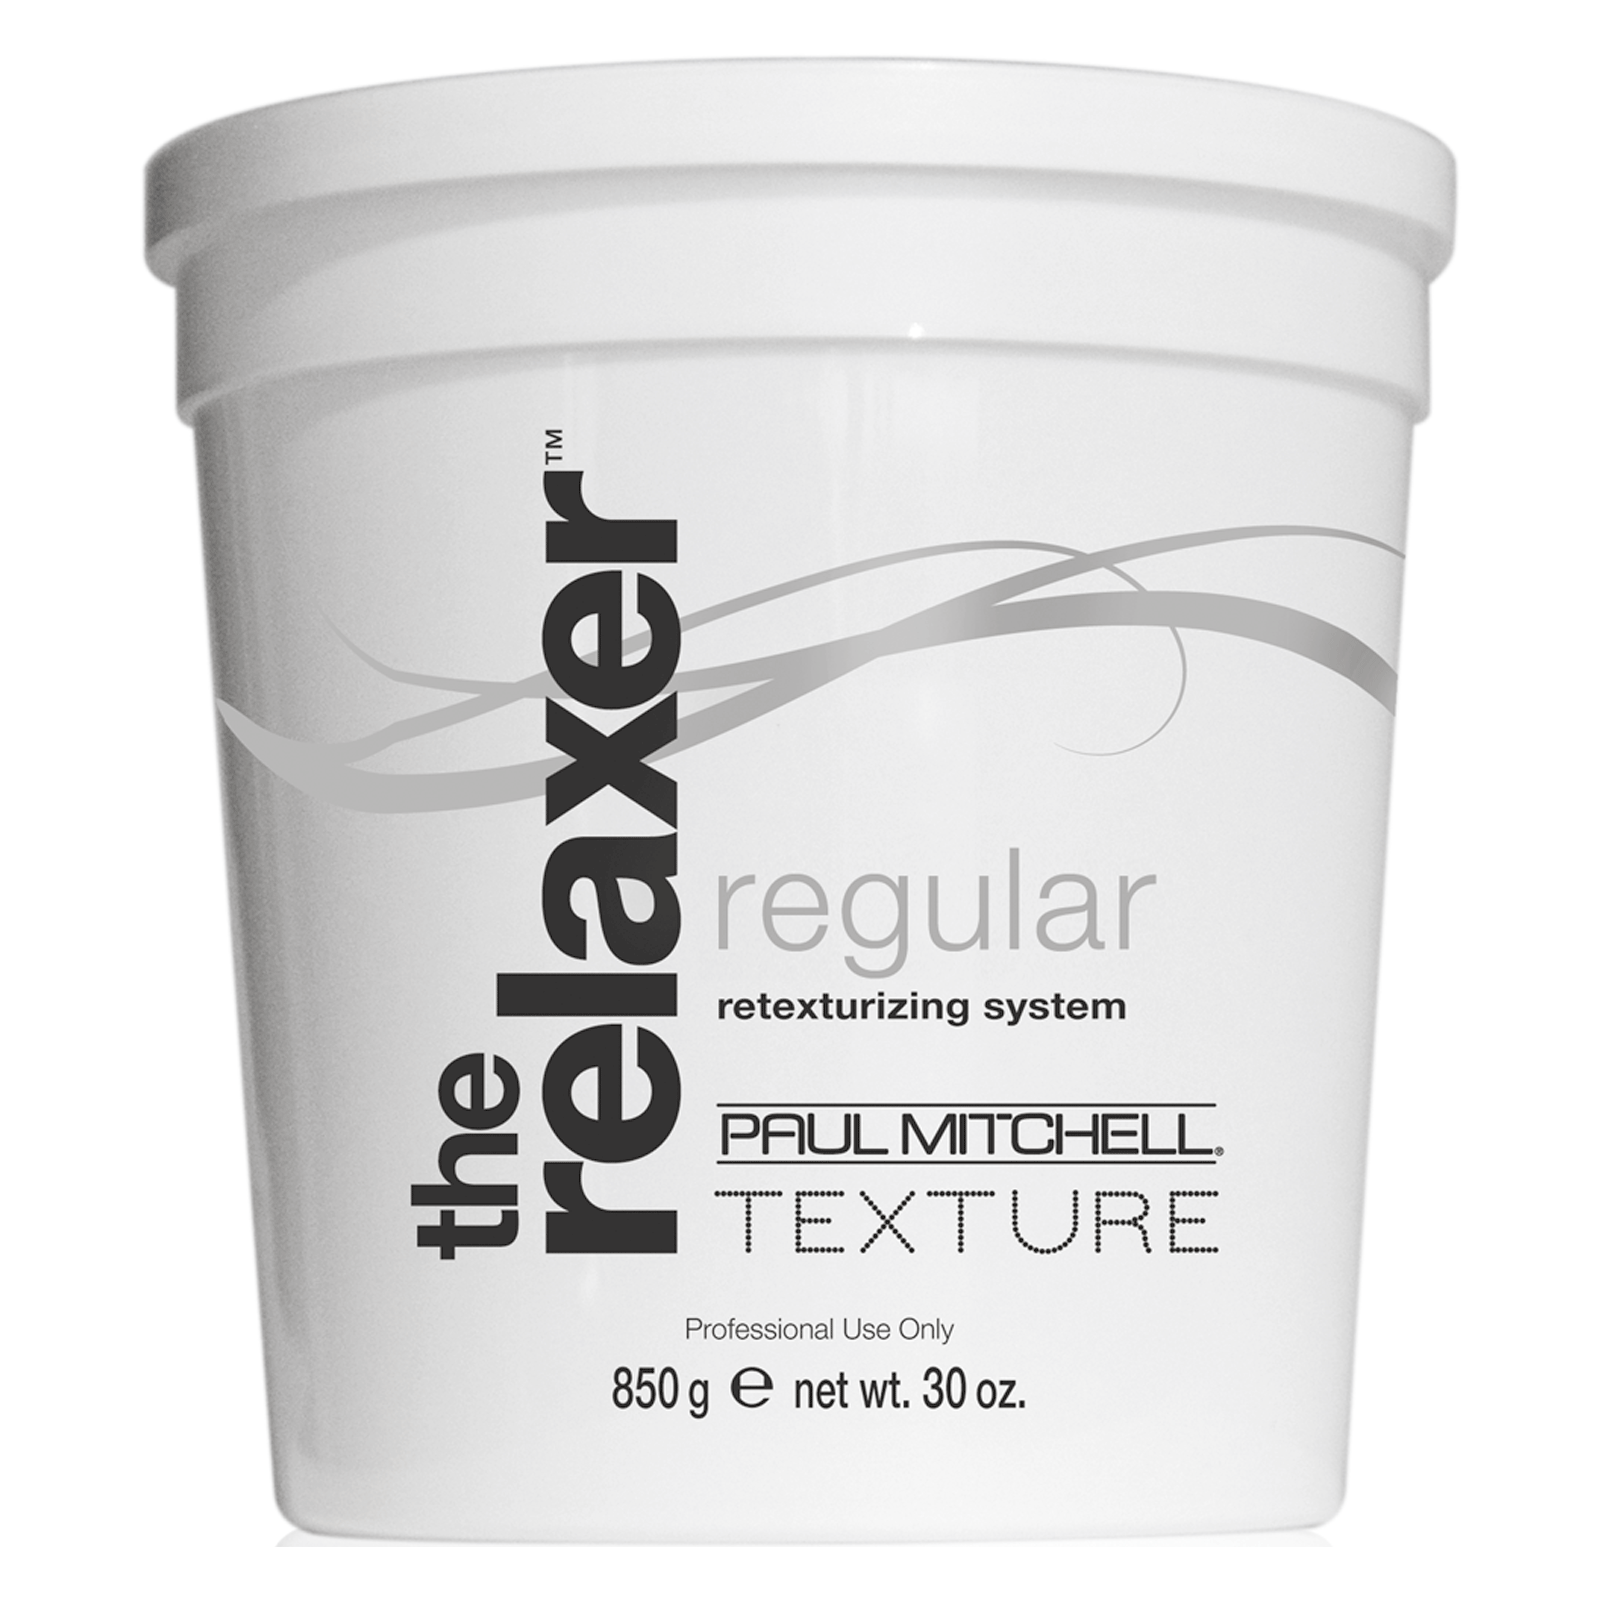 The Relaxer-Regular